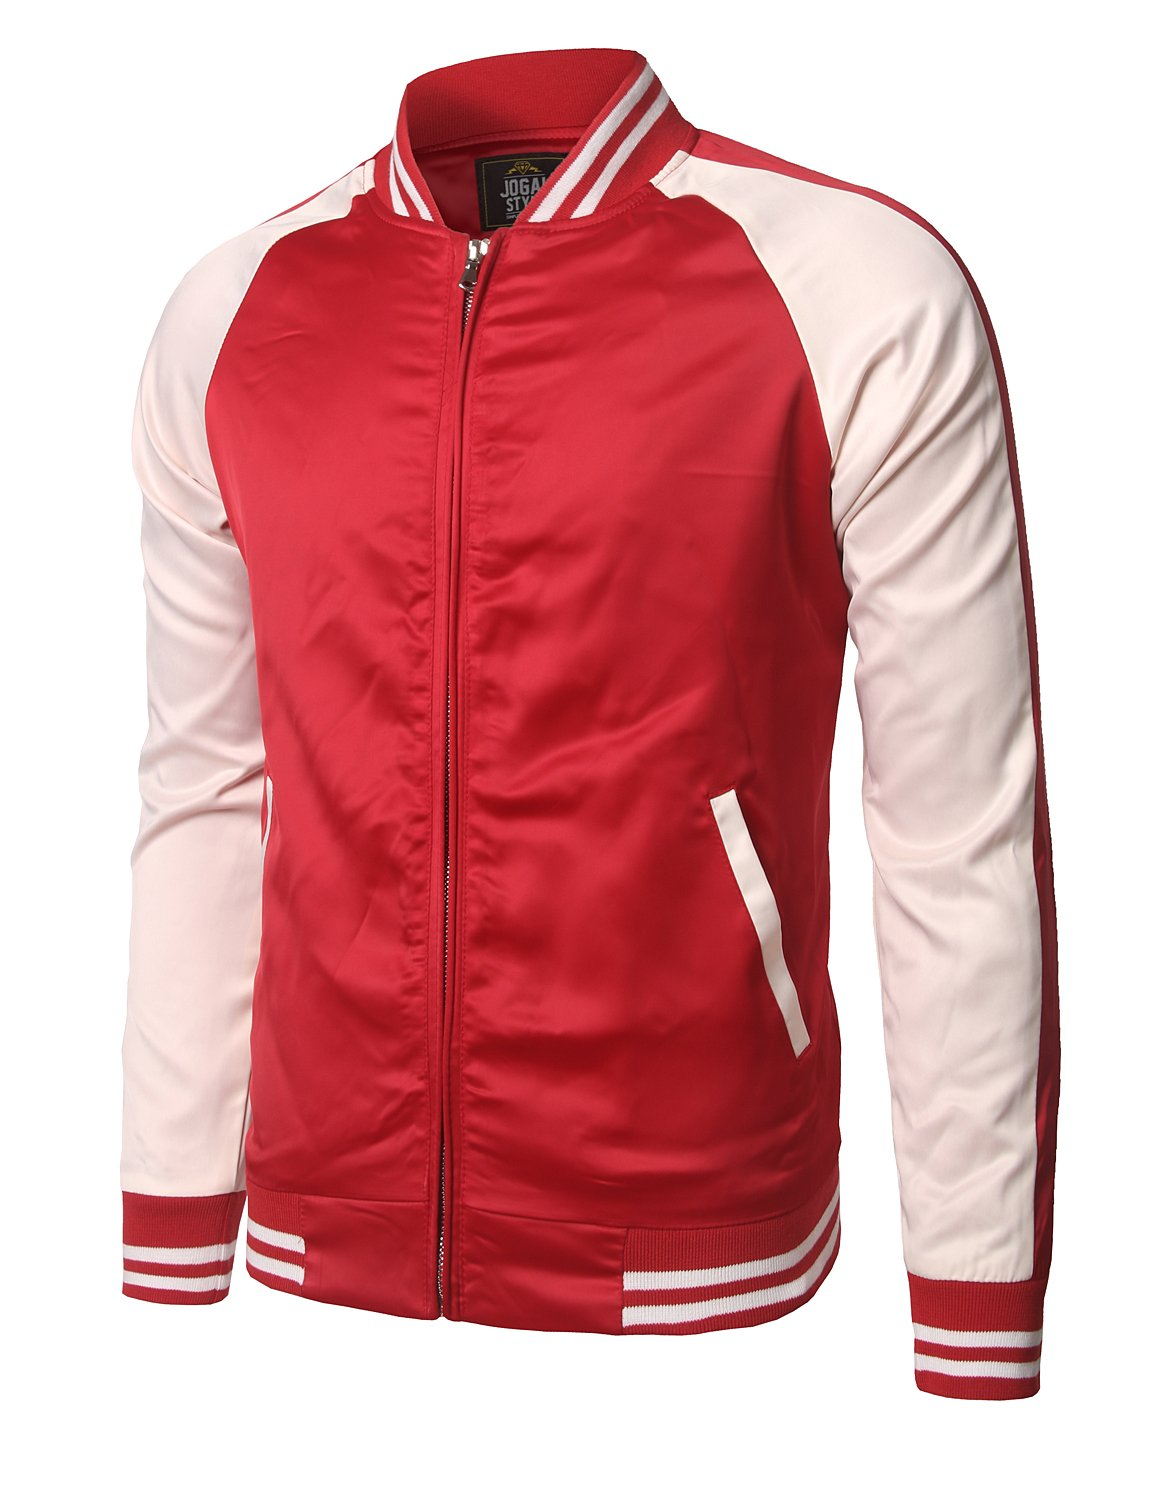 JOGAL Mens Zip up Stain Contrast Colors Varsity Baseball Bomber Jacket X-Large Red